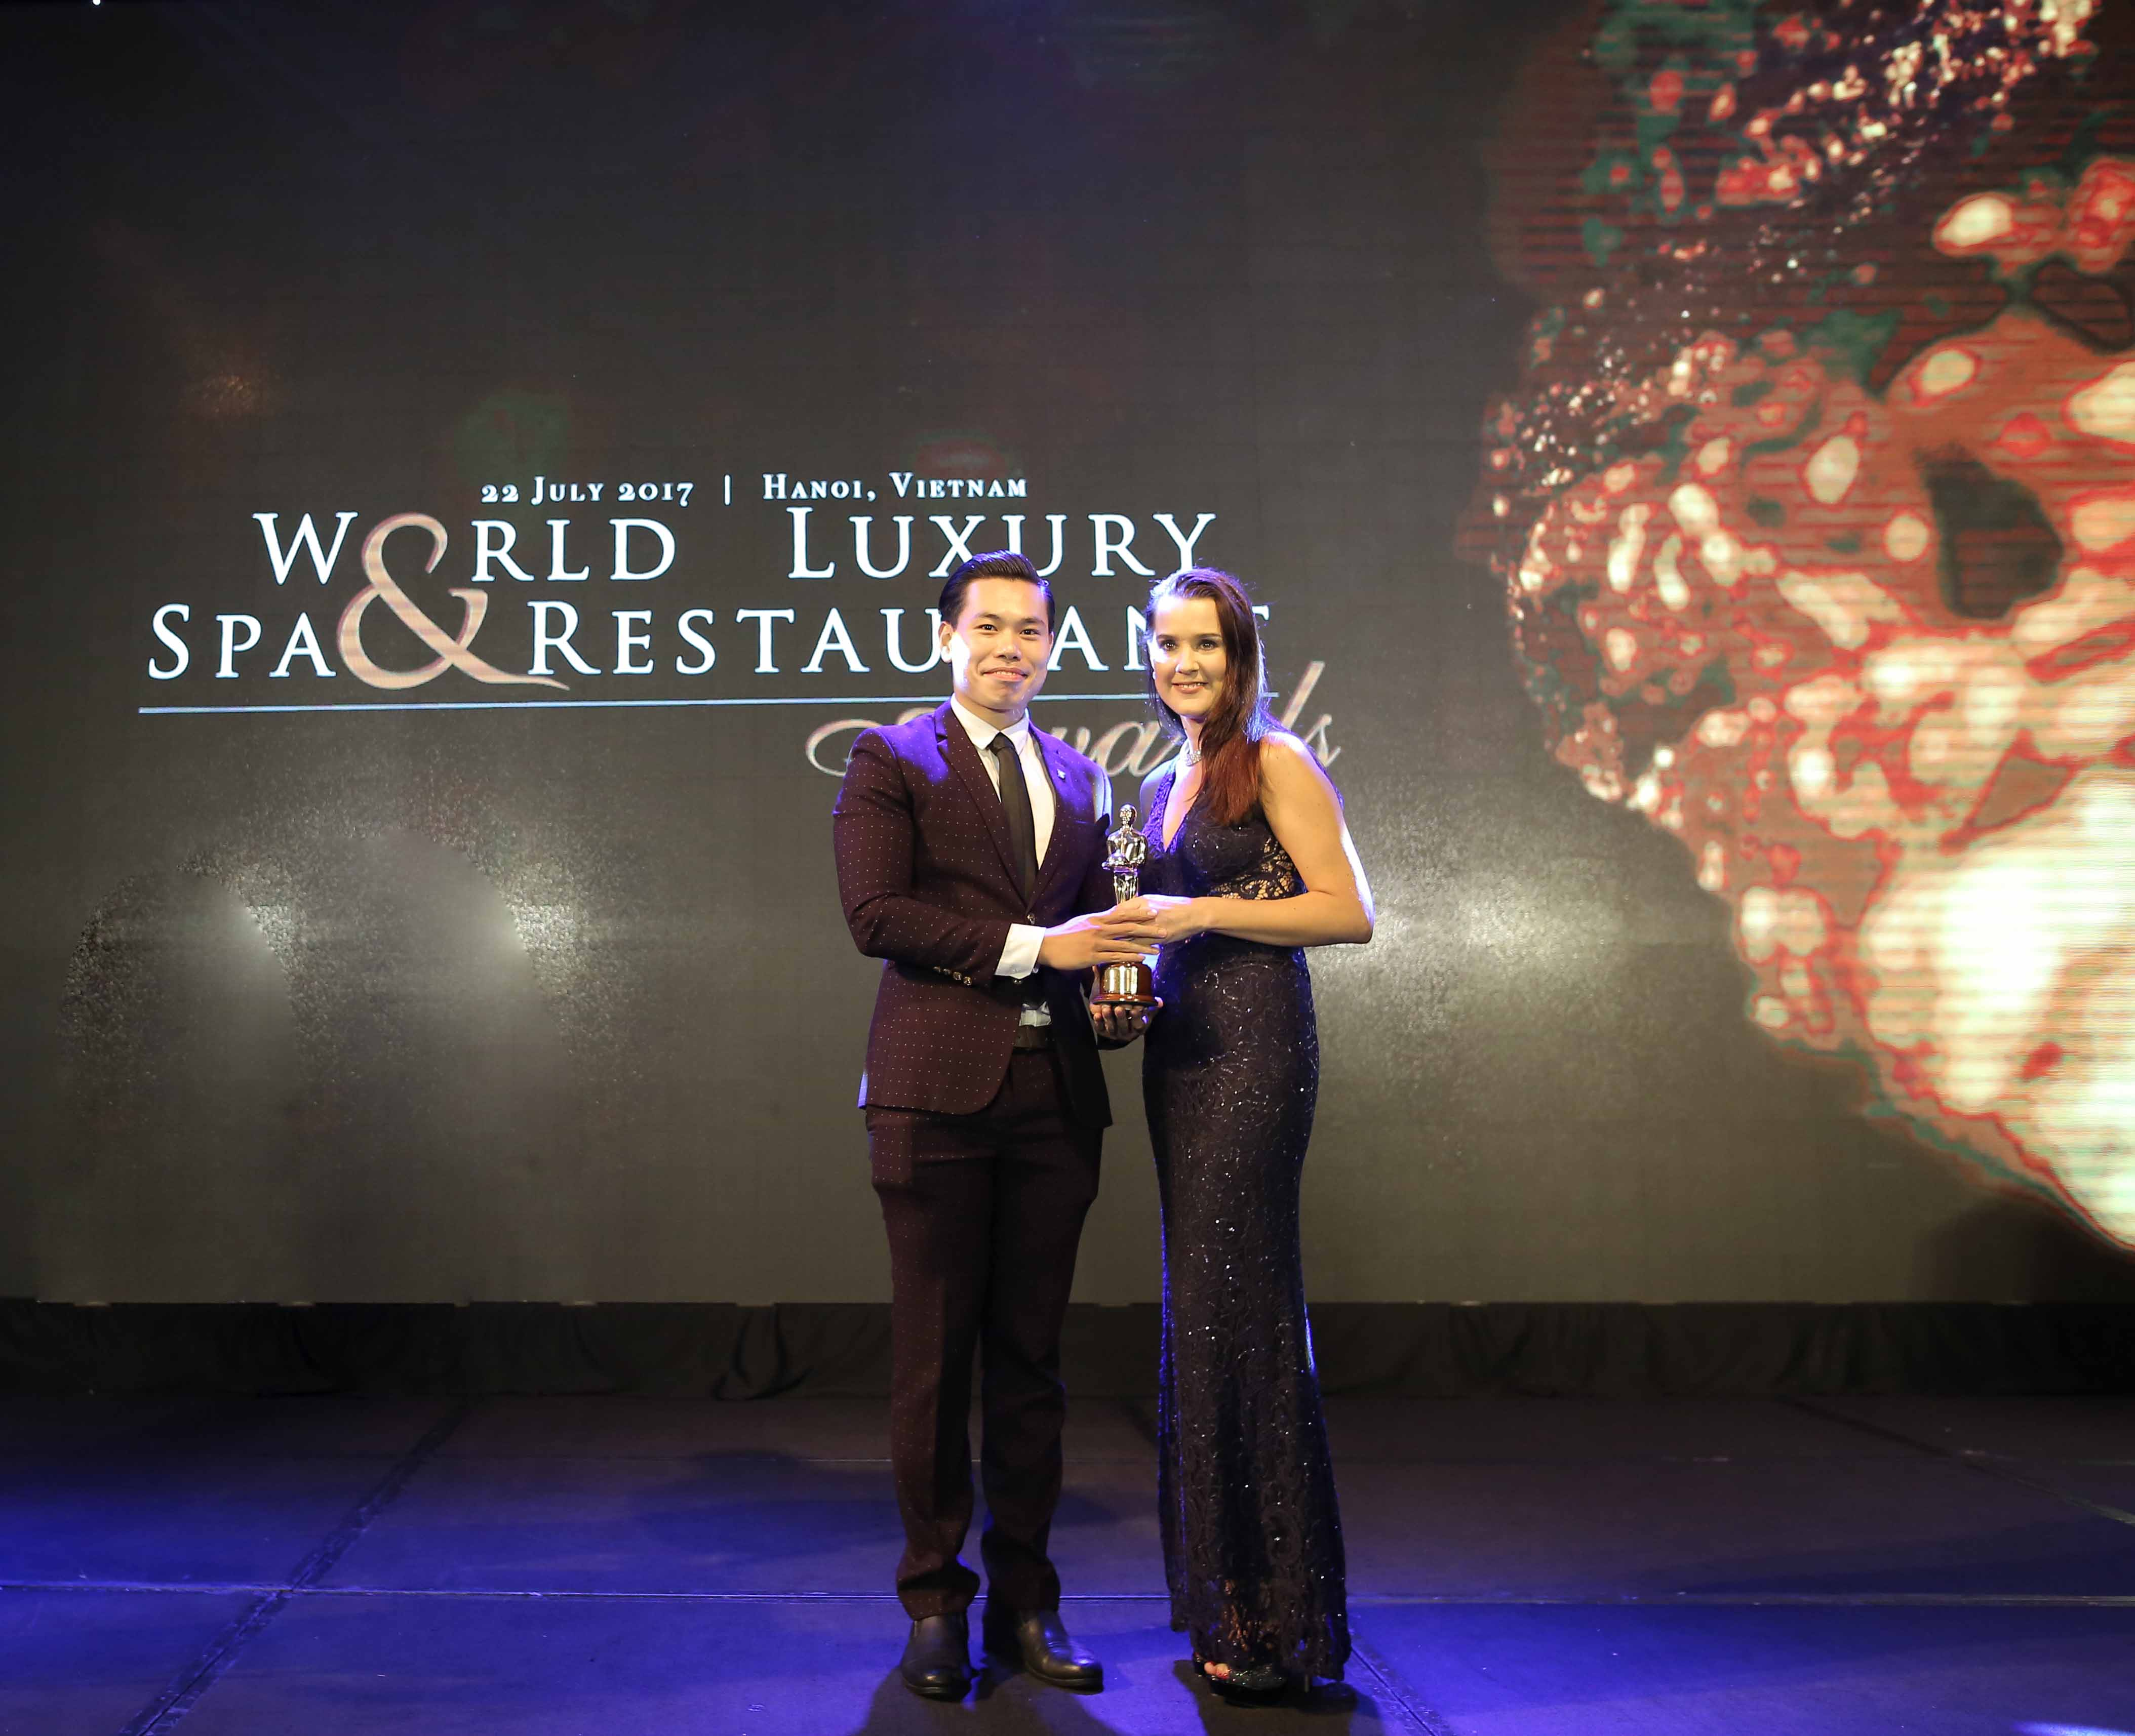 mr-vu-duc-linh-u-french-grill-assistant-restaurant-manager-honored-to-receive-the-award